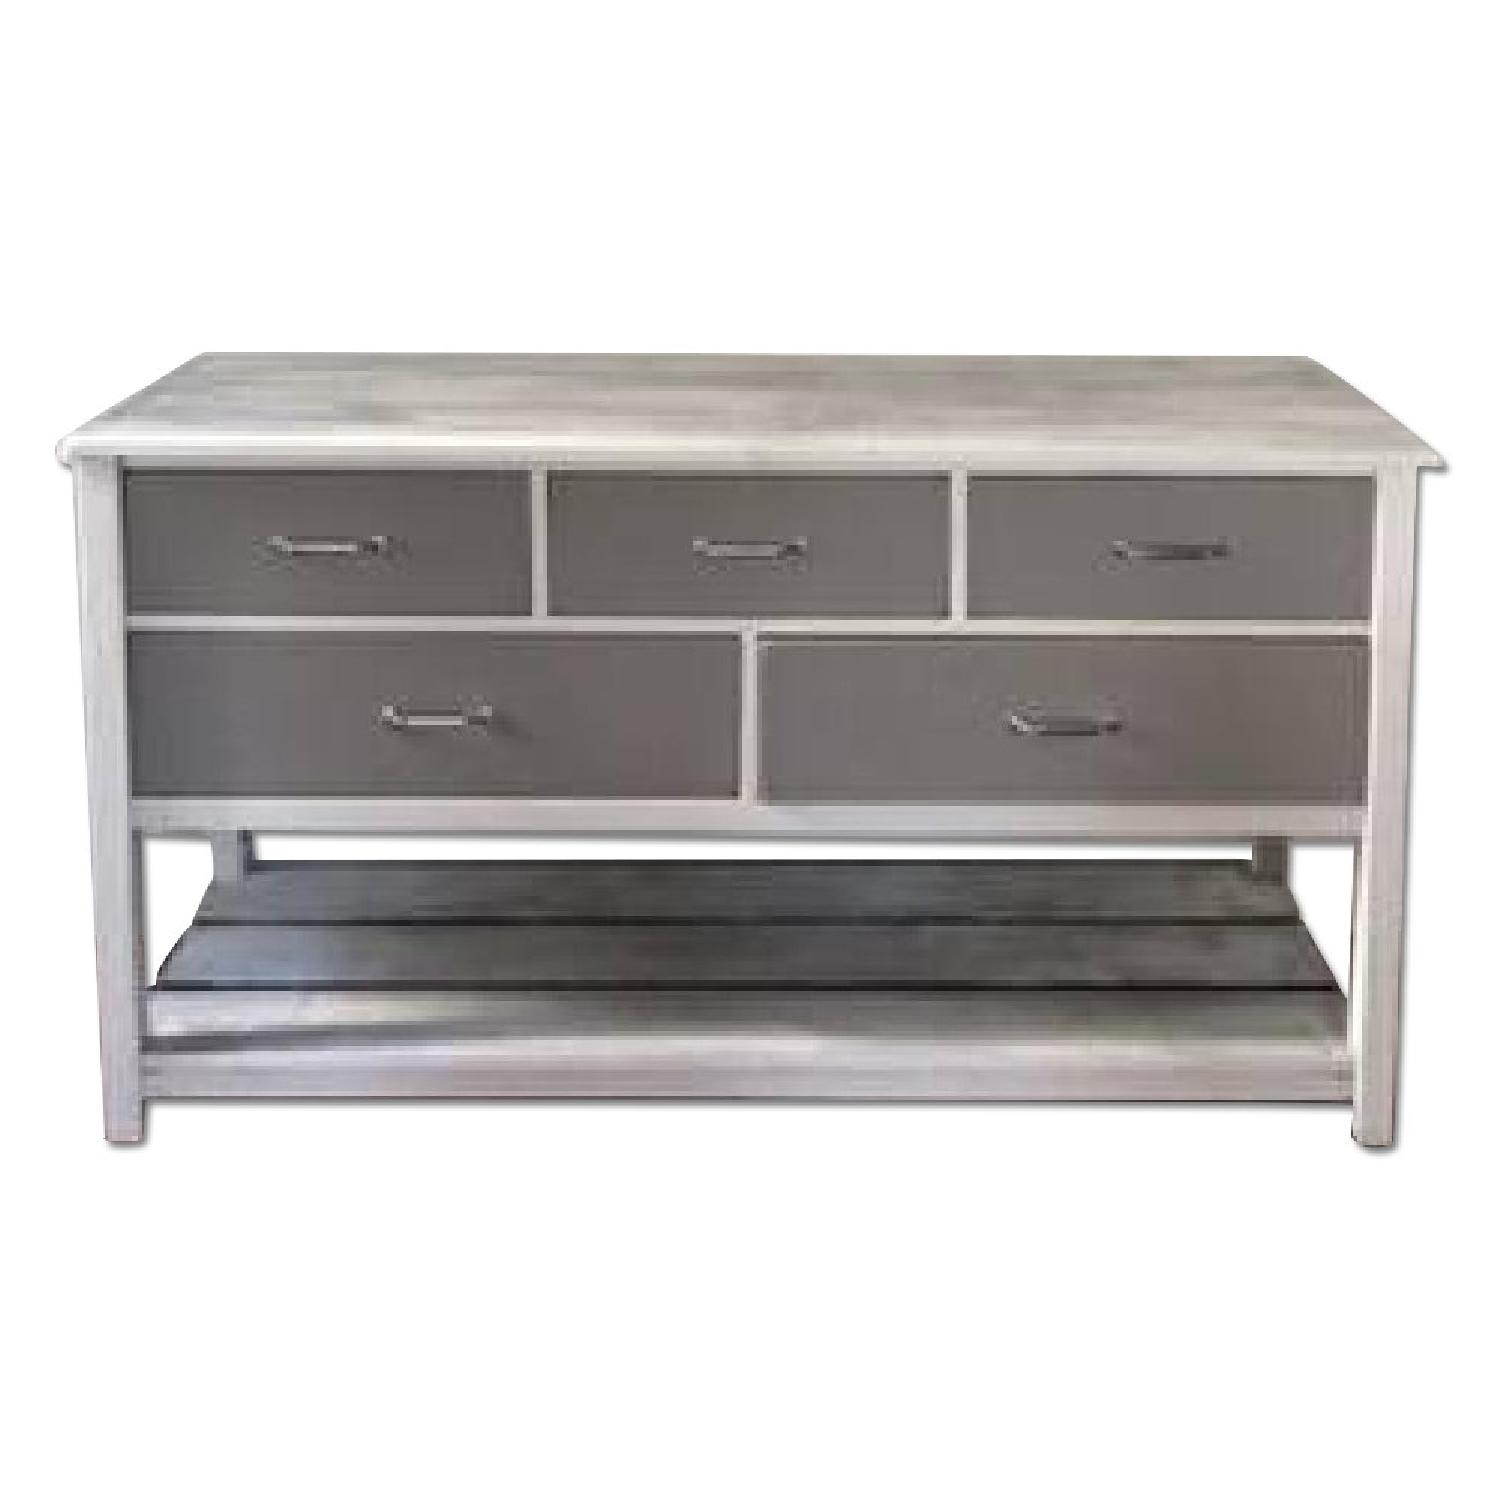 White & Gray Dining Room Sideboard - image-0